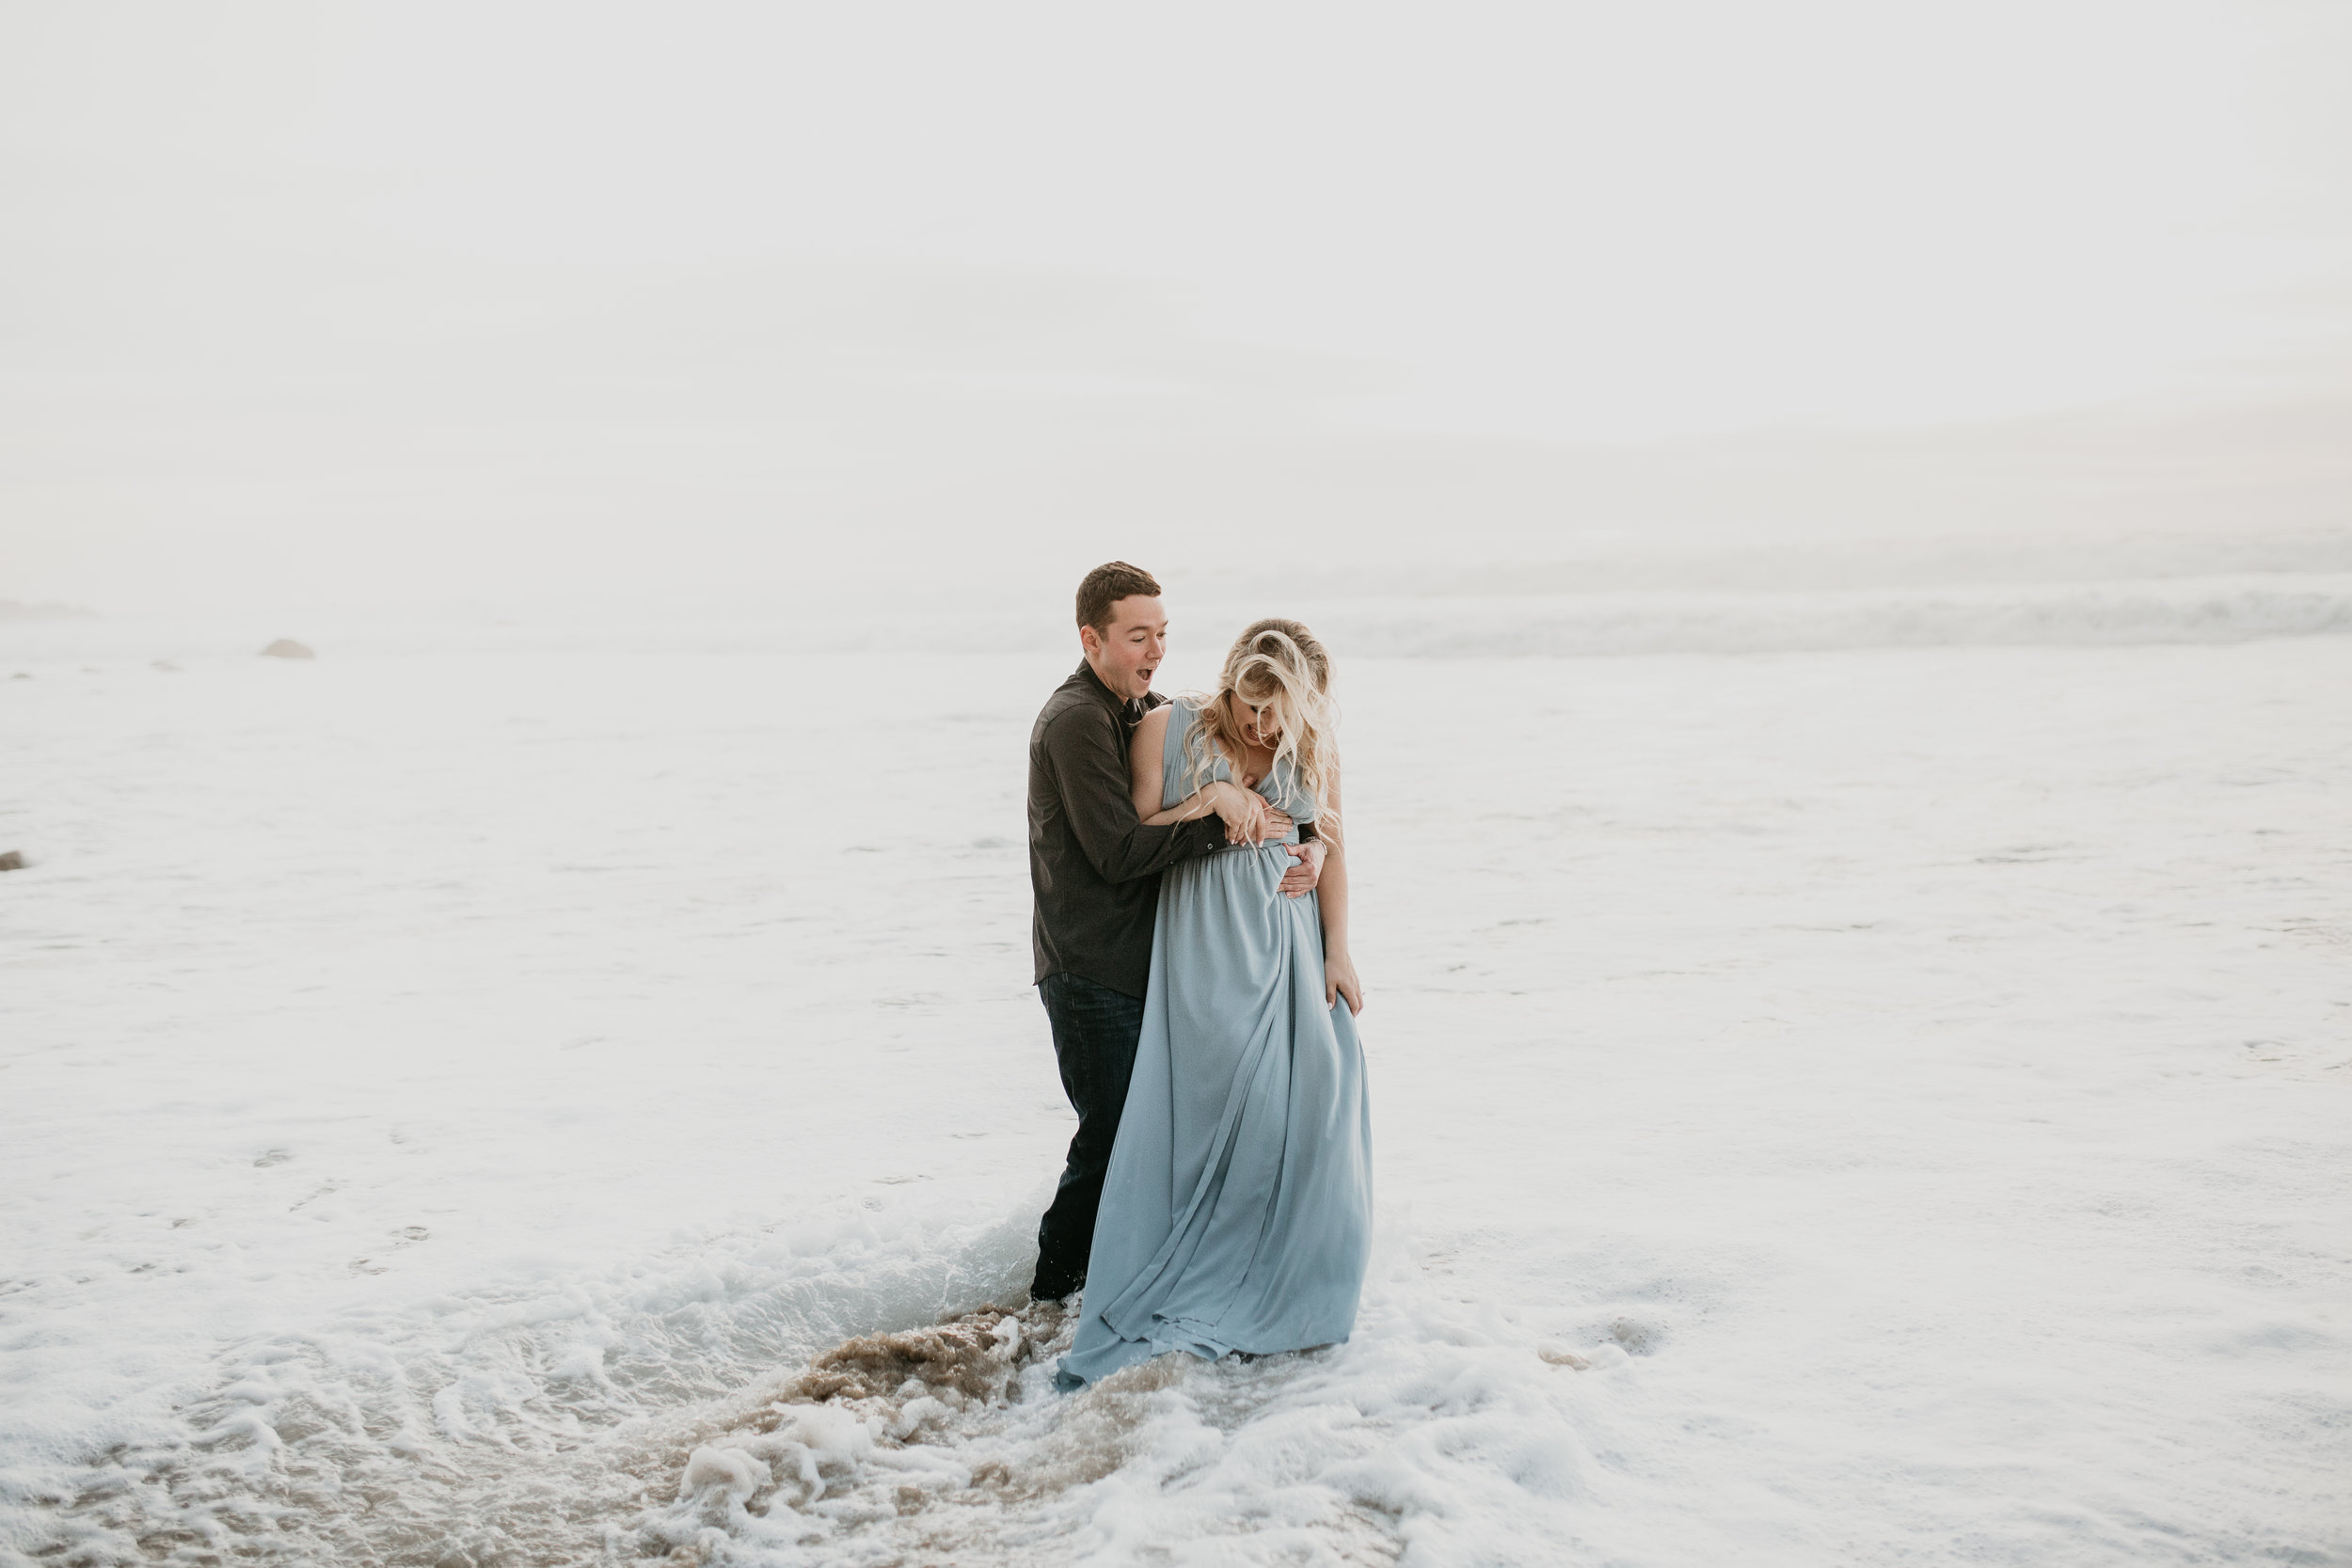 Nicole-Daacke-Photography-big-sur-garrapatta-state-park-adventurous-engagement-session-bixy-bridge-elopement-big-sur-wedding-photographer-monterey-elopement-photographer-california-golden-sunset-coast-photos-48.jpg